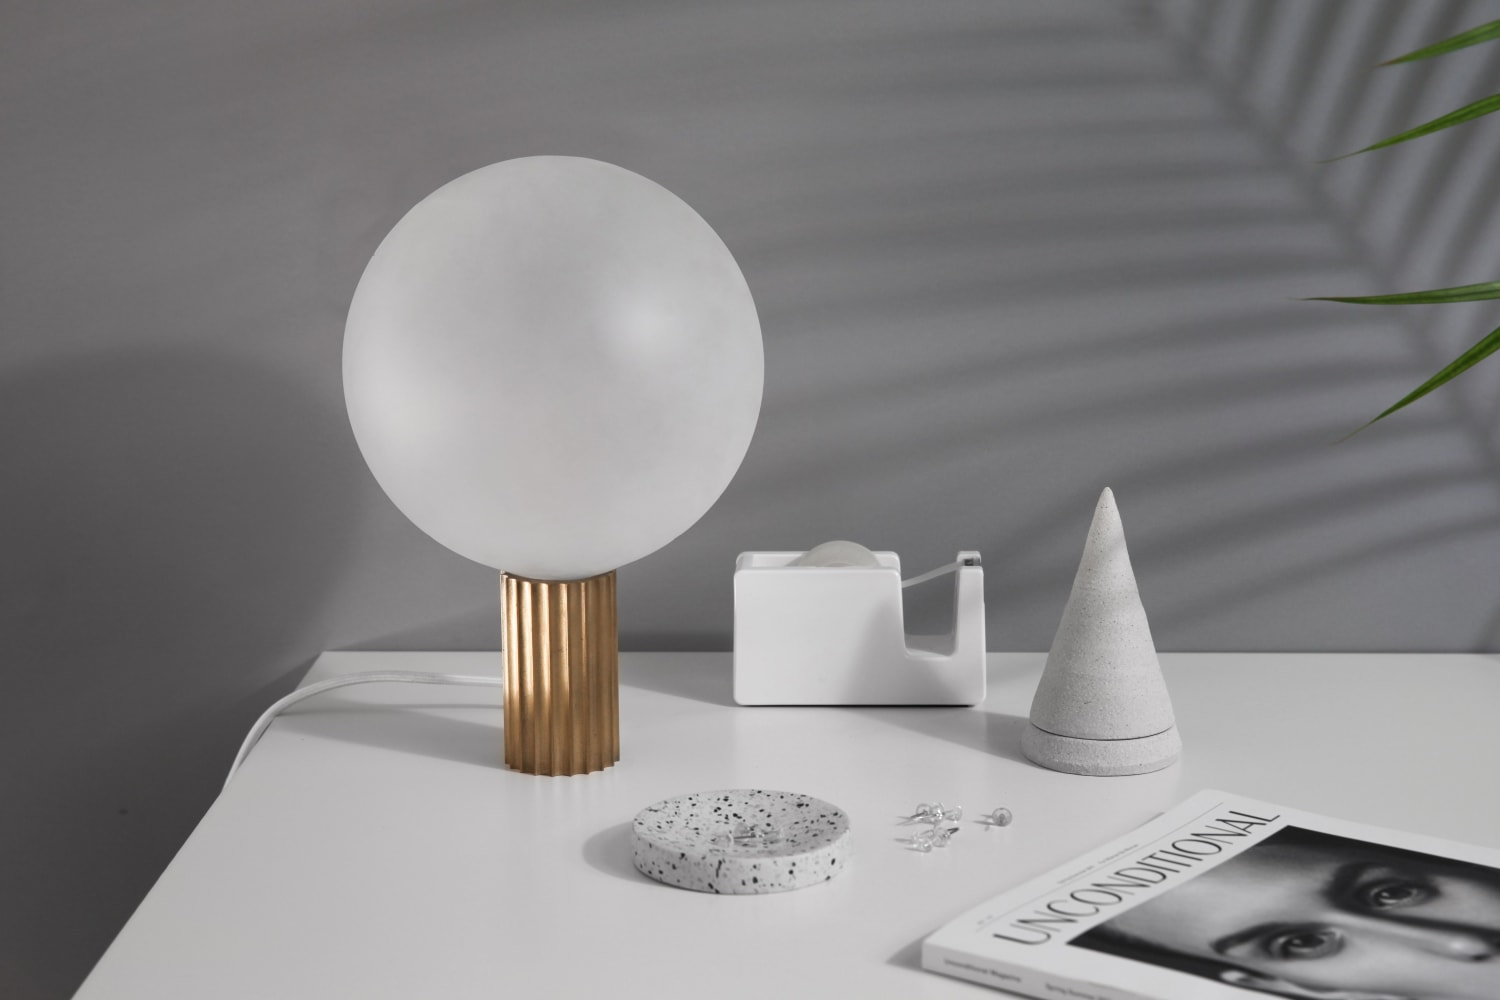 White orb lamp with gold base